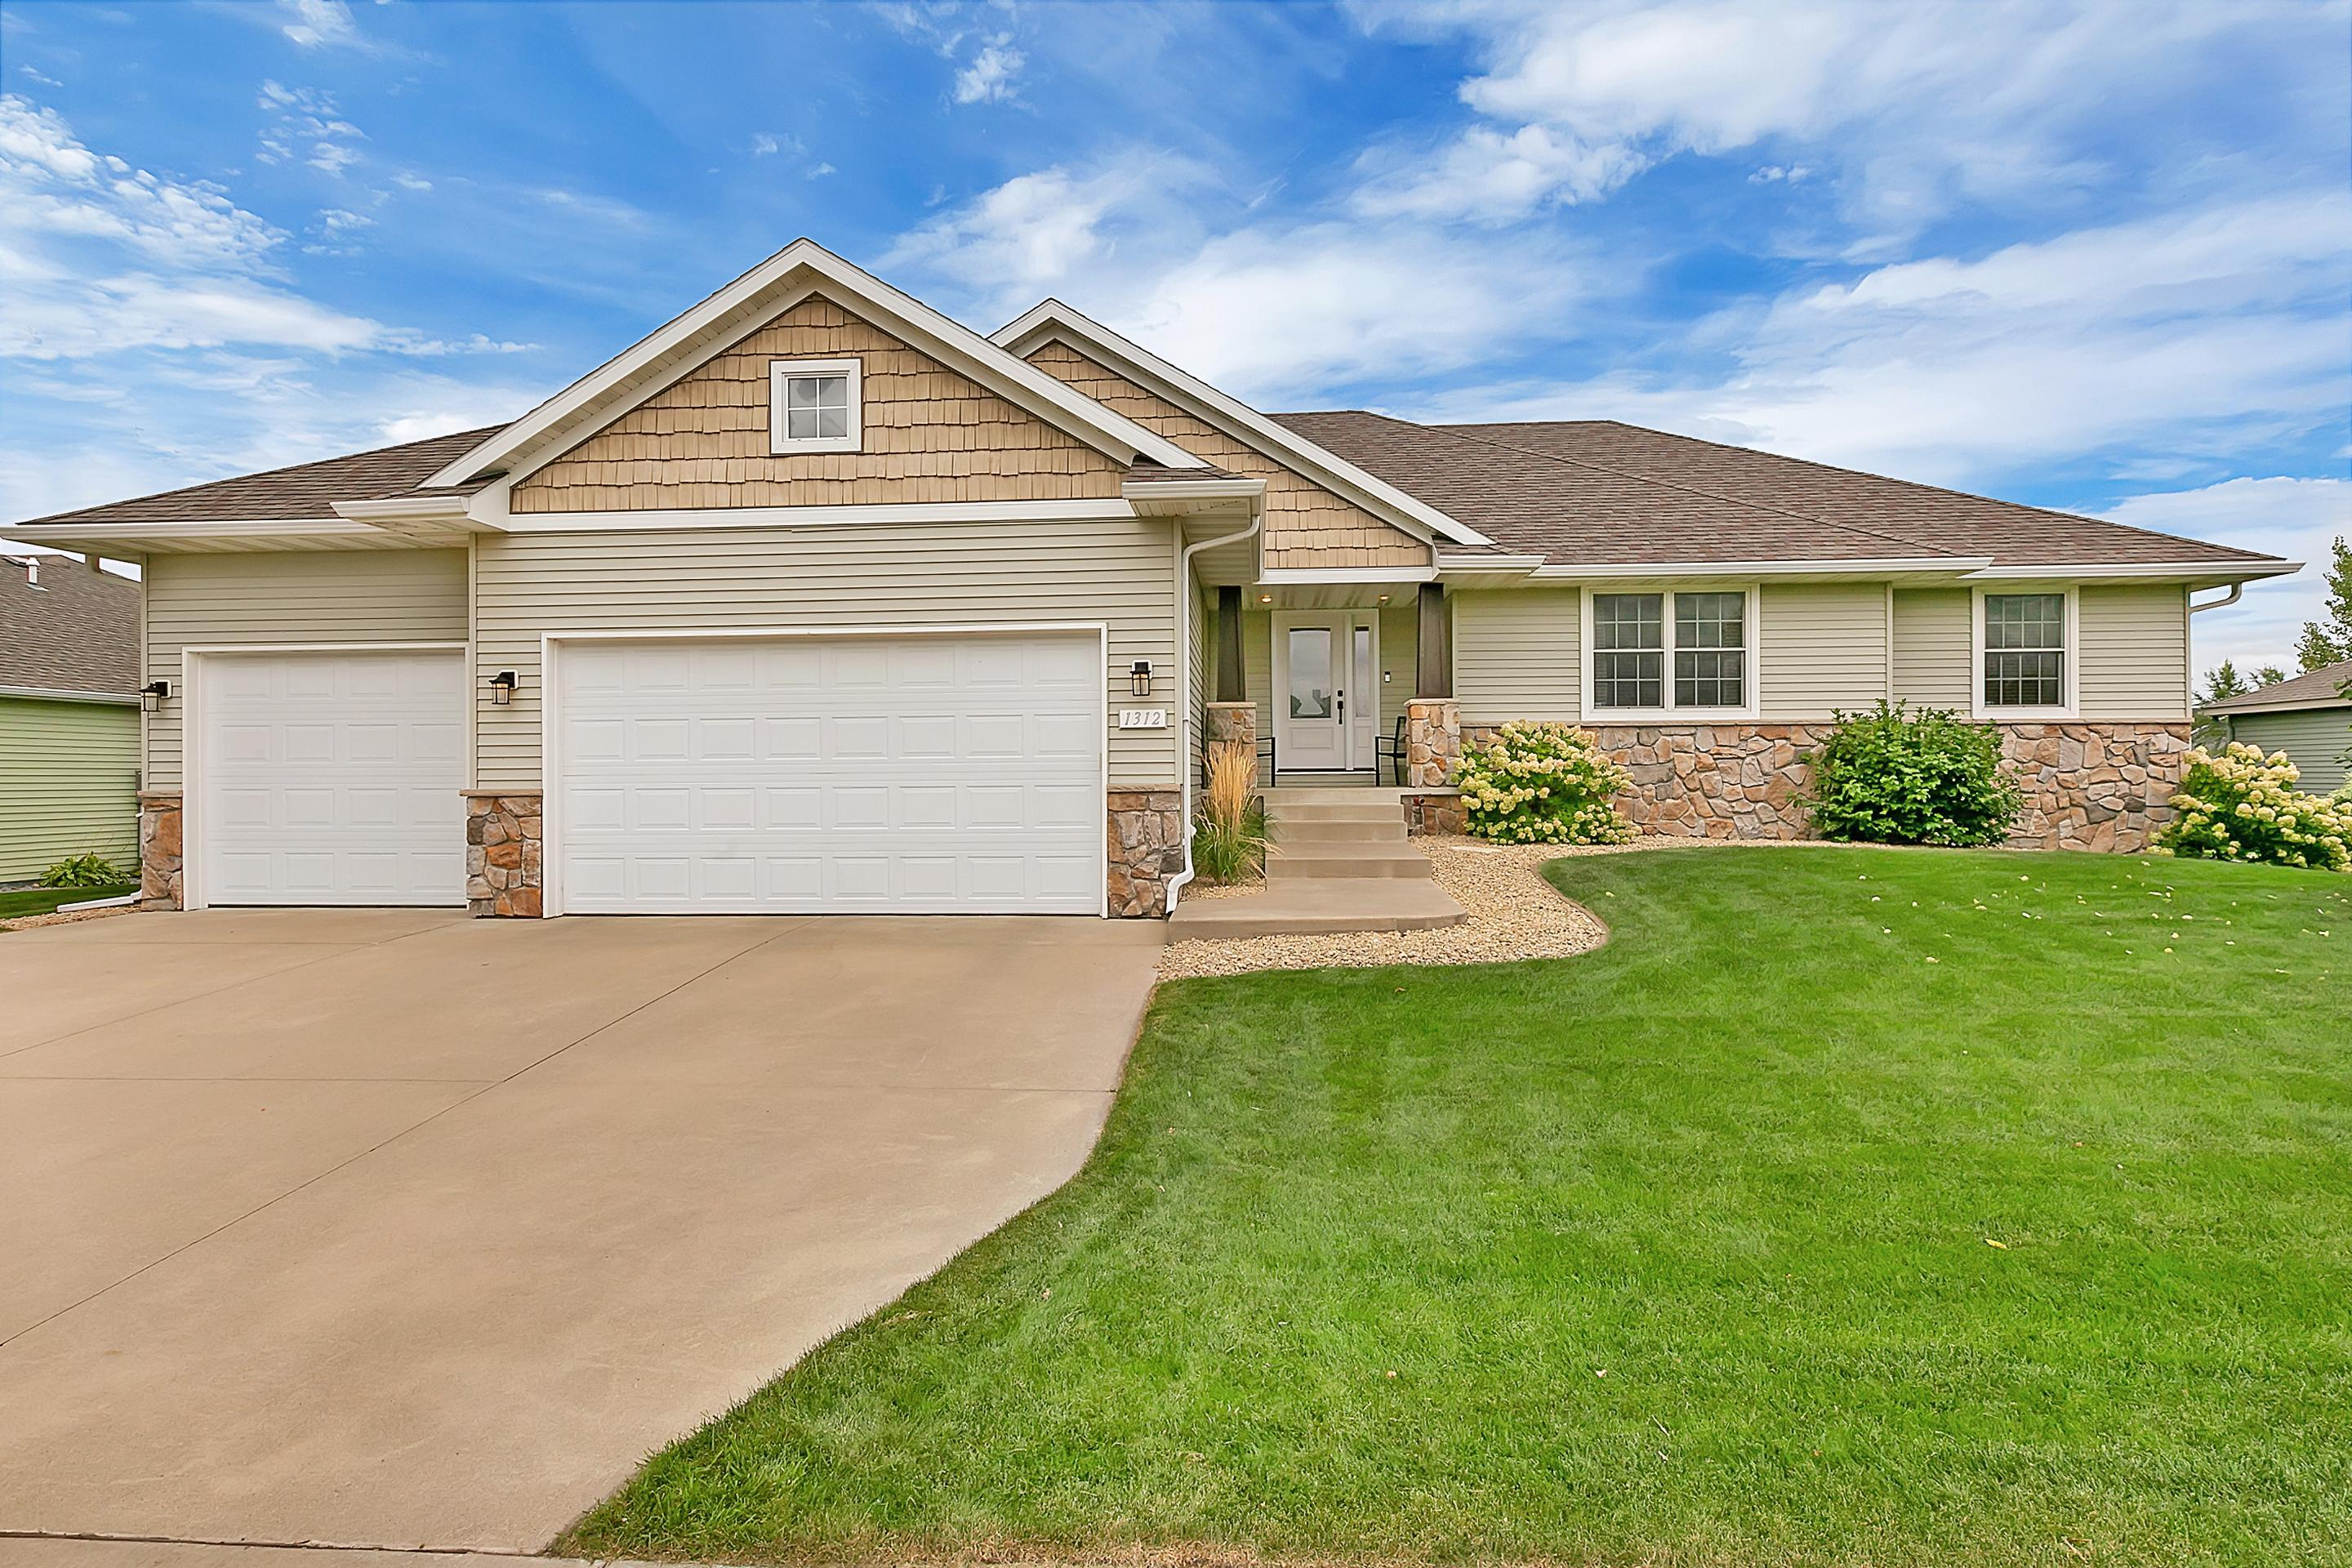 Attention to detail is evident in this immaculately maintained rambler!  Once you enter this 4 bedroom 3 bathroom home you will appreciate the many great features the home has to offer; vaulted ceilings, open floor plan, all living facilities on the main level and large windows that provide natural light galore. Kitchen has granite counter tops, tile backsplash, walk-in pantry and stainless steel appliances. Owner's suite has a tile shower and large walk-in closet. 2 additional bedrooms and a full bathroom, laundry room, informal dining room and a beautiful sunroom offering great views of the wetlands and private backyard complete the main level. The lower level has tons of space including a huge family room and fireplace as well as a large bedroom with a walk-in closet, 3/4 bathroom, potential for a 5th bedroom/flex room that has already been framed in and a huge storage room.  Steel siding, irrigation system and 3 stall garage are the finishing touches to this amazing home!